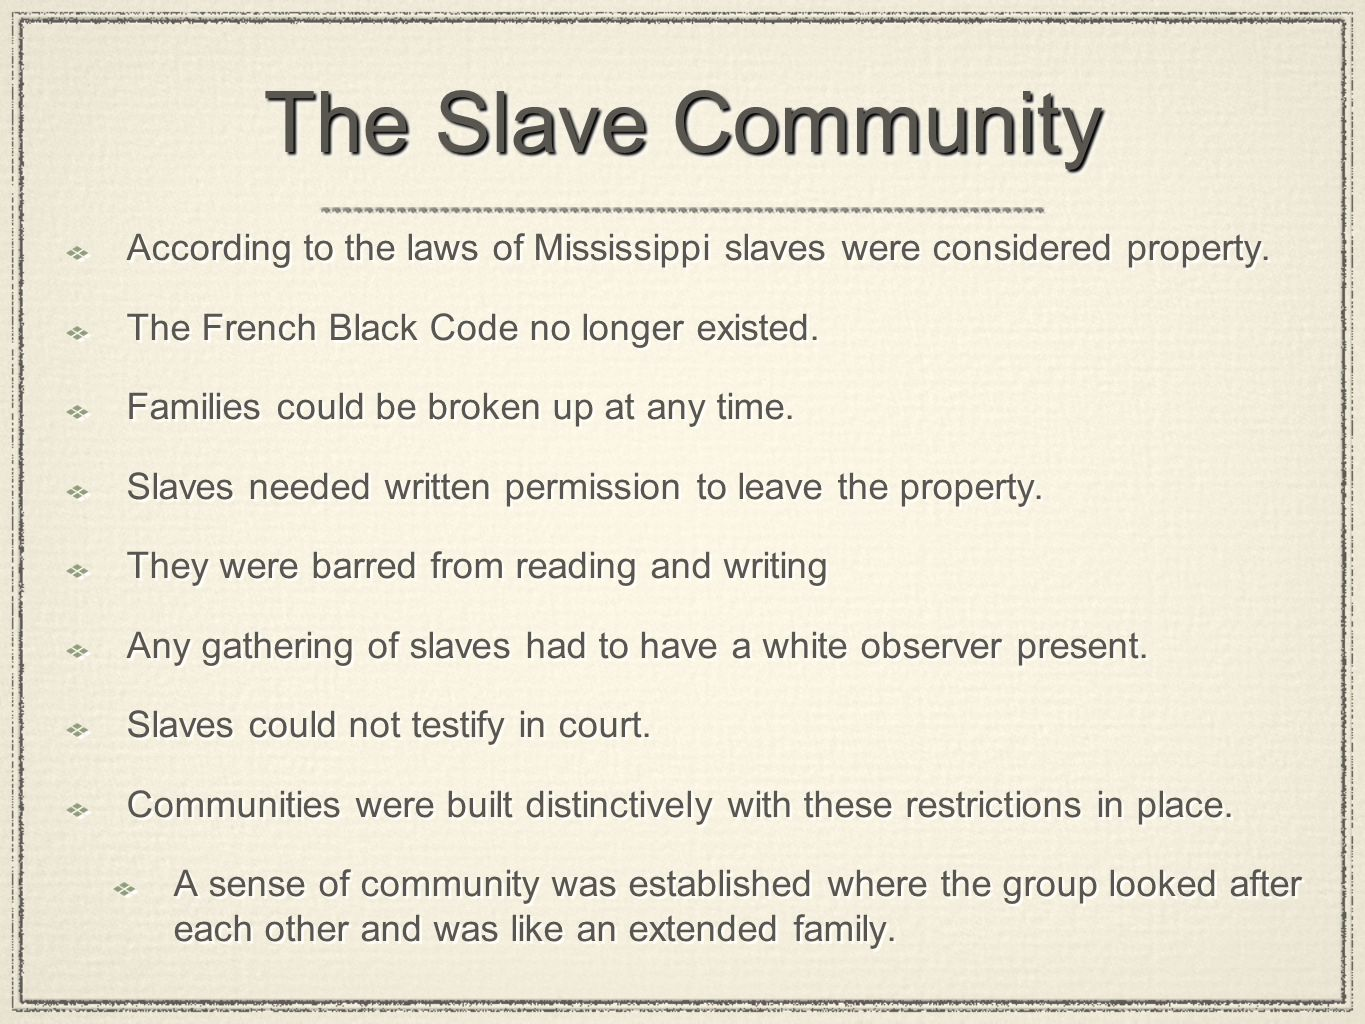 The Slave Community According to the laws of Mississippi slaves were considered property. The French Black Code no longer existed.